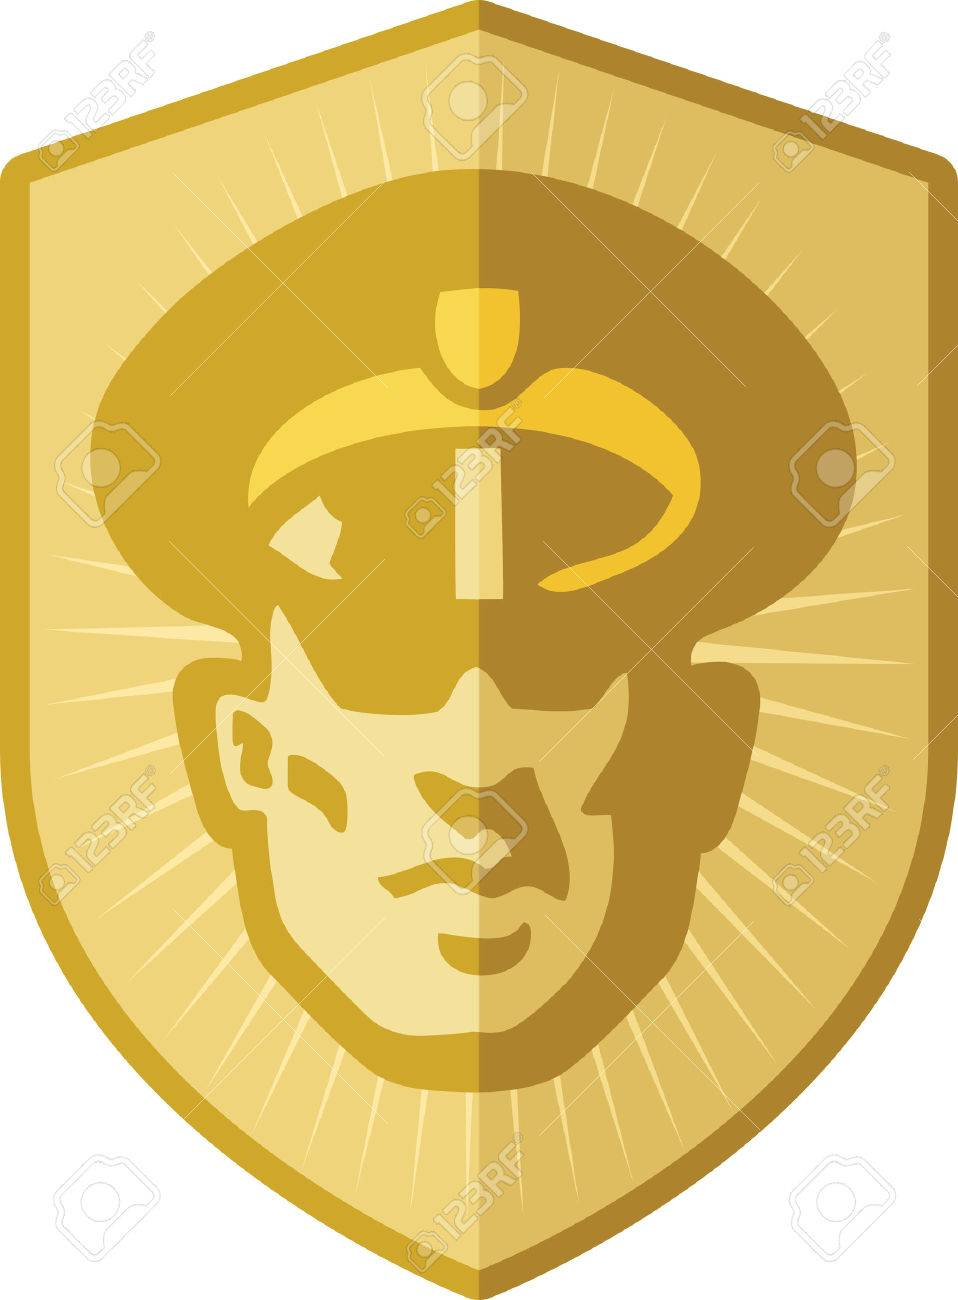 security guard badge royalty free cliparts vectors and stock